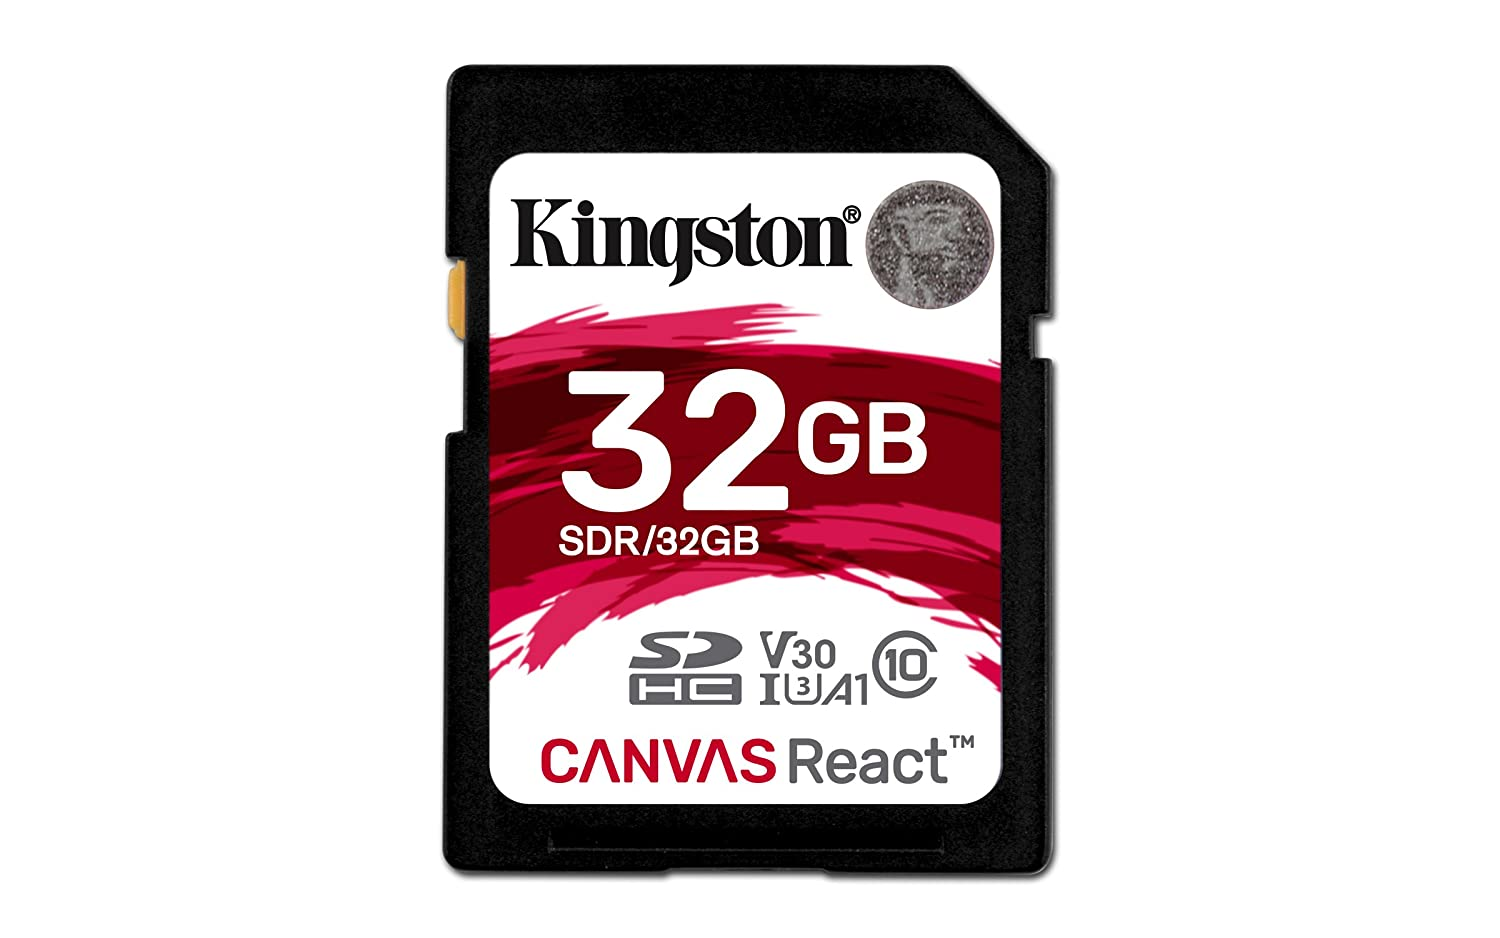 Kingston Canvas React 32GB SDHC Class 10 SD Memory Card UHS-I 100MB/s R Flash Memory High Speed SD Card (SDR/32GB)